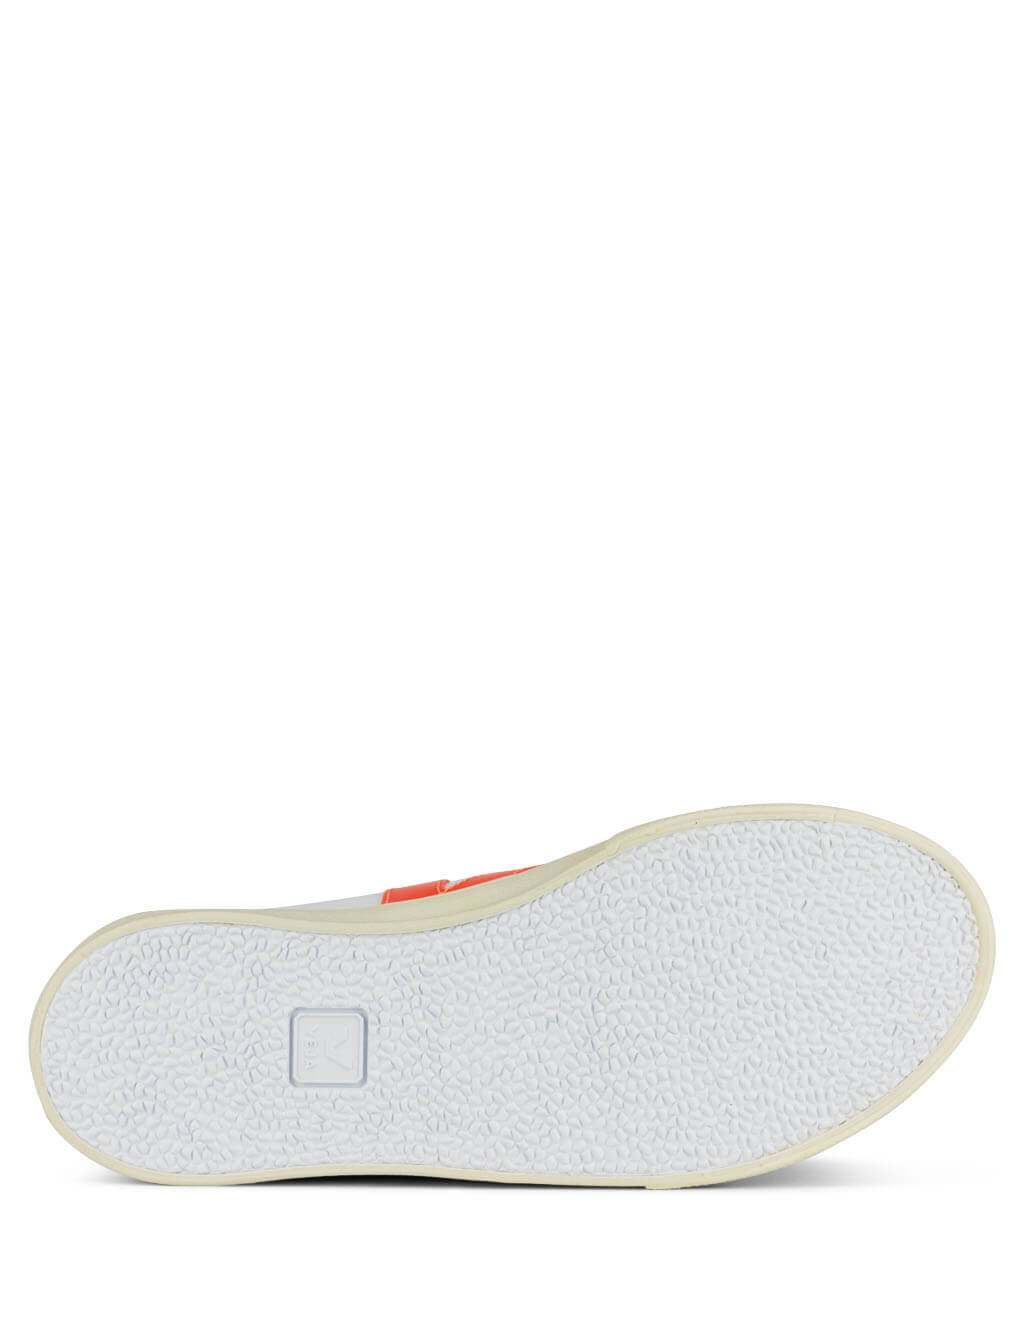 Women's White and Orange Veja Esplar Sneakers EO022213